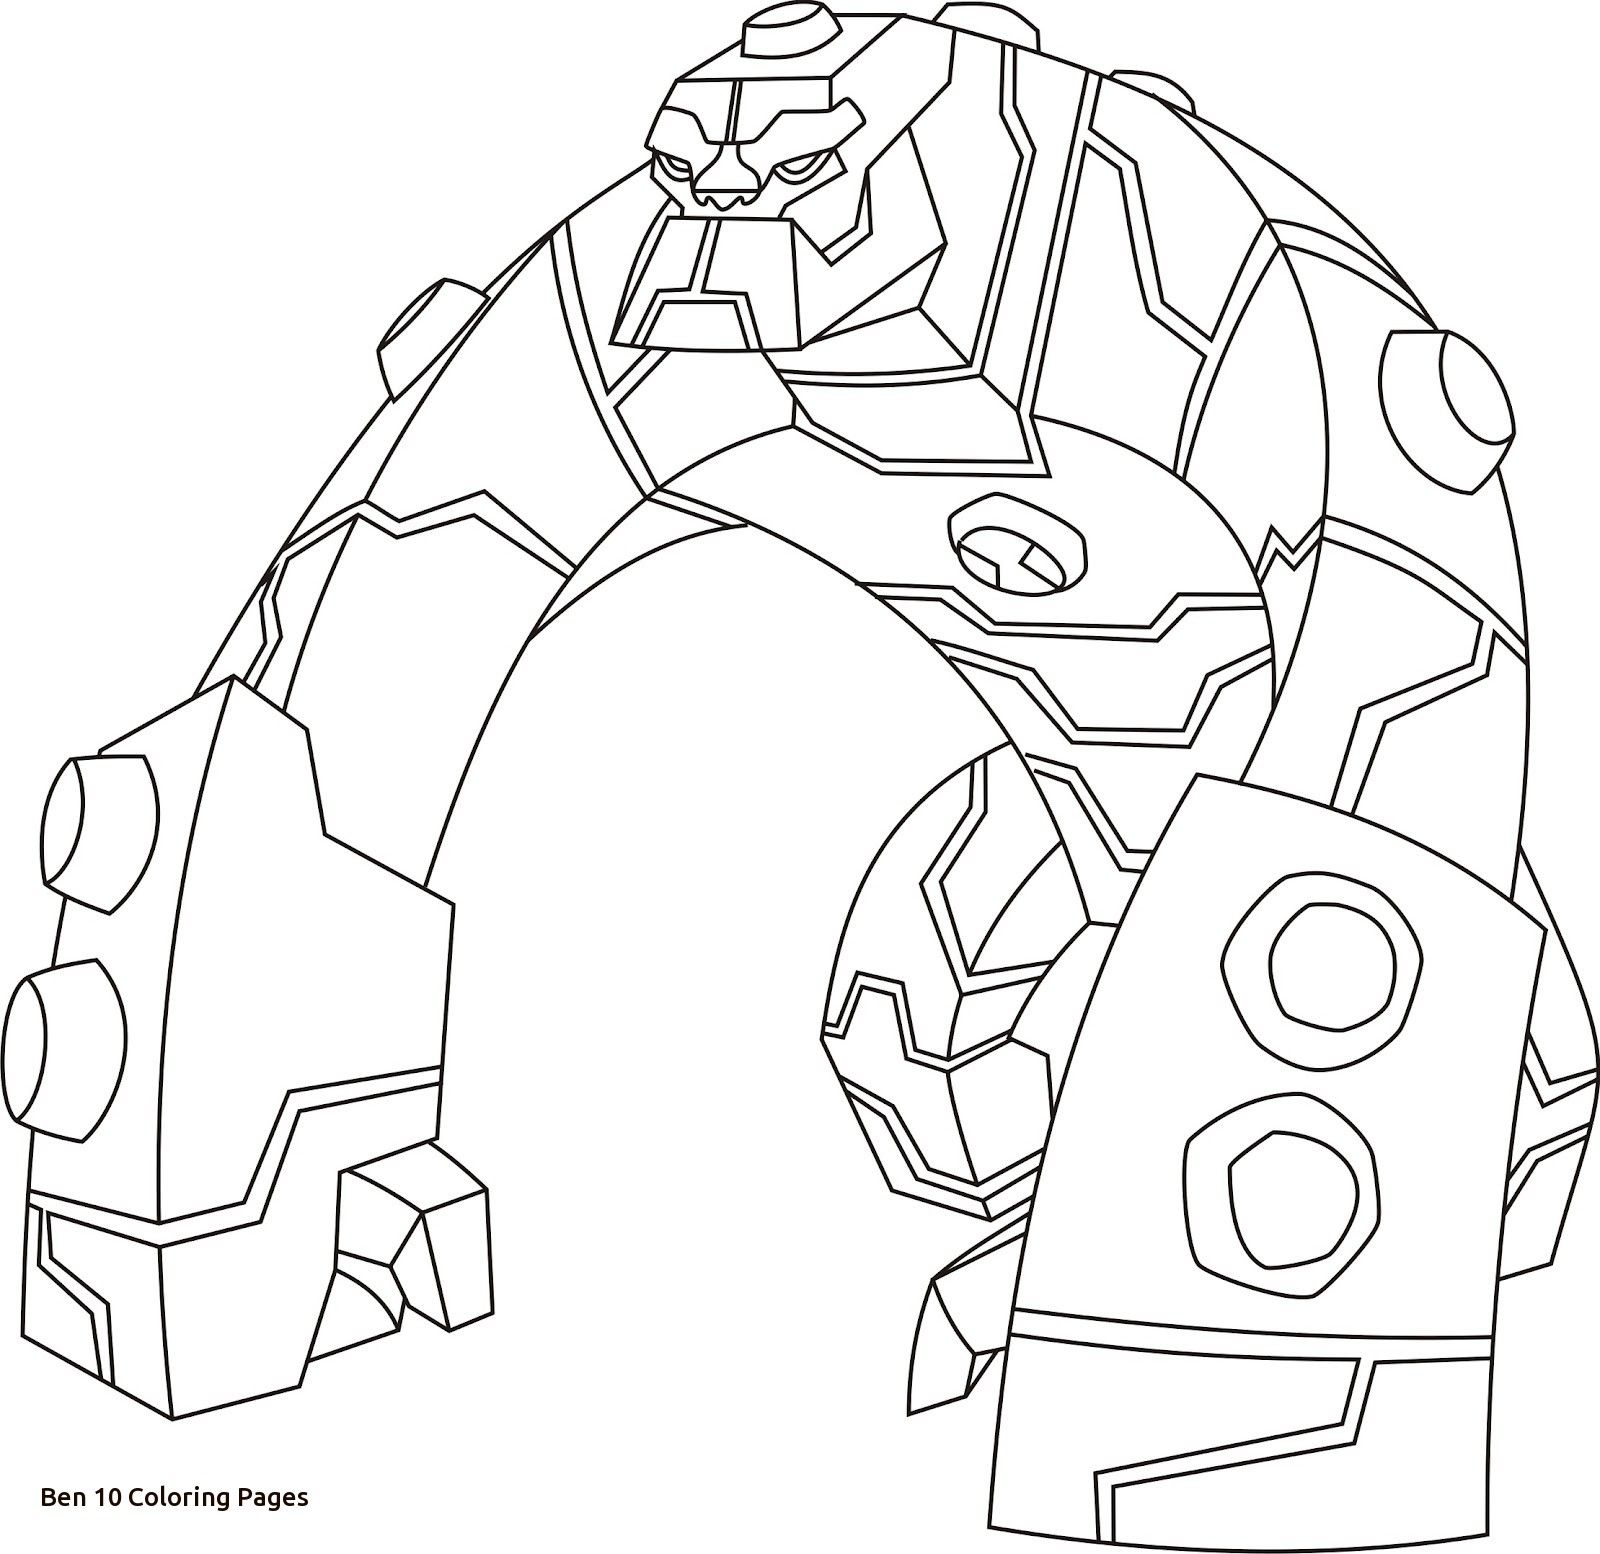 Free Coloring Pages Of Ben 10 Bloxx with Ben 10 Coloring